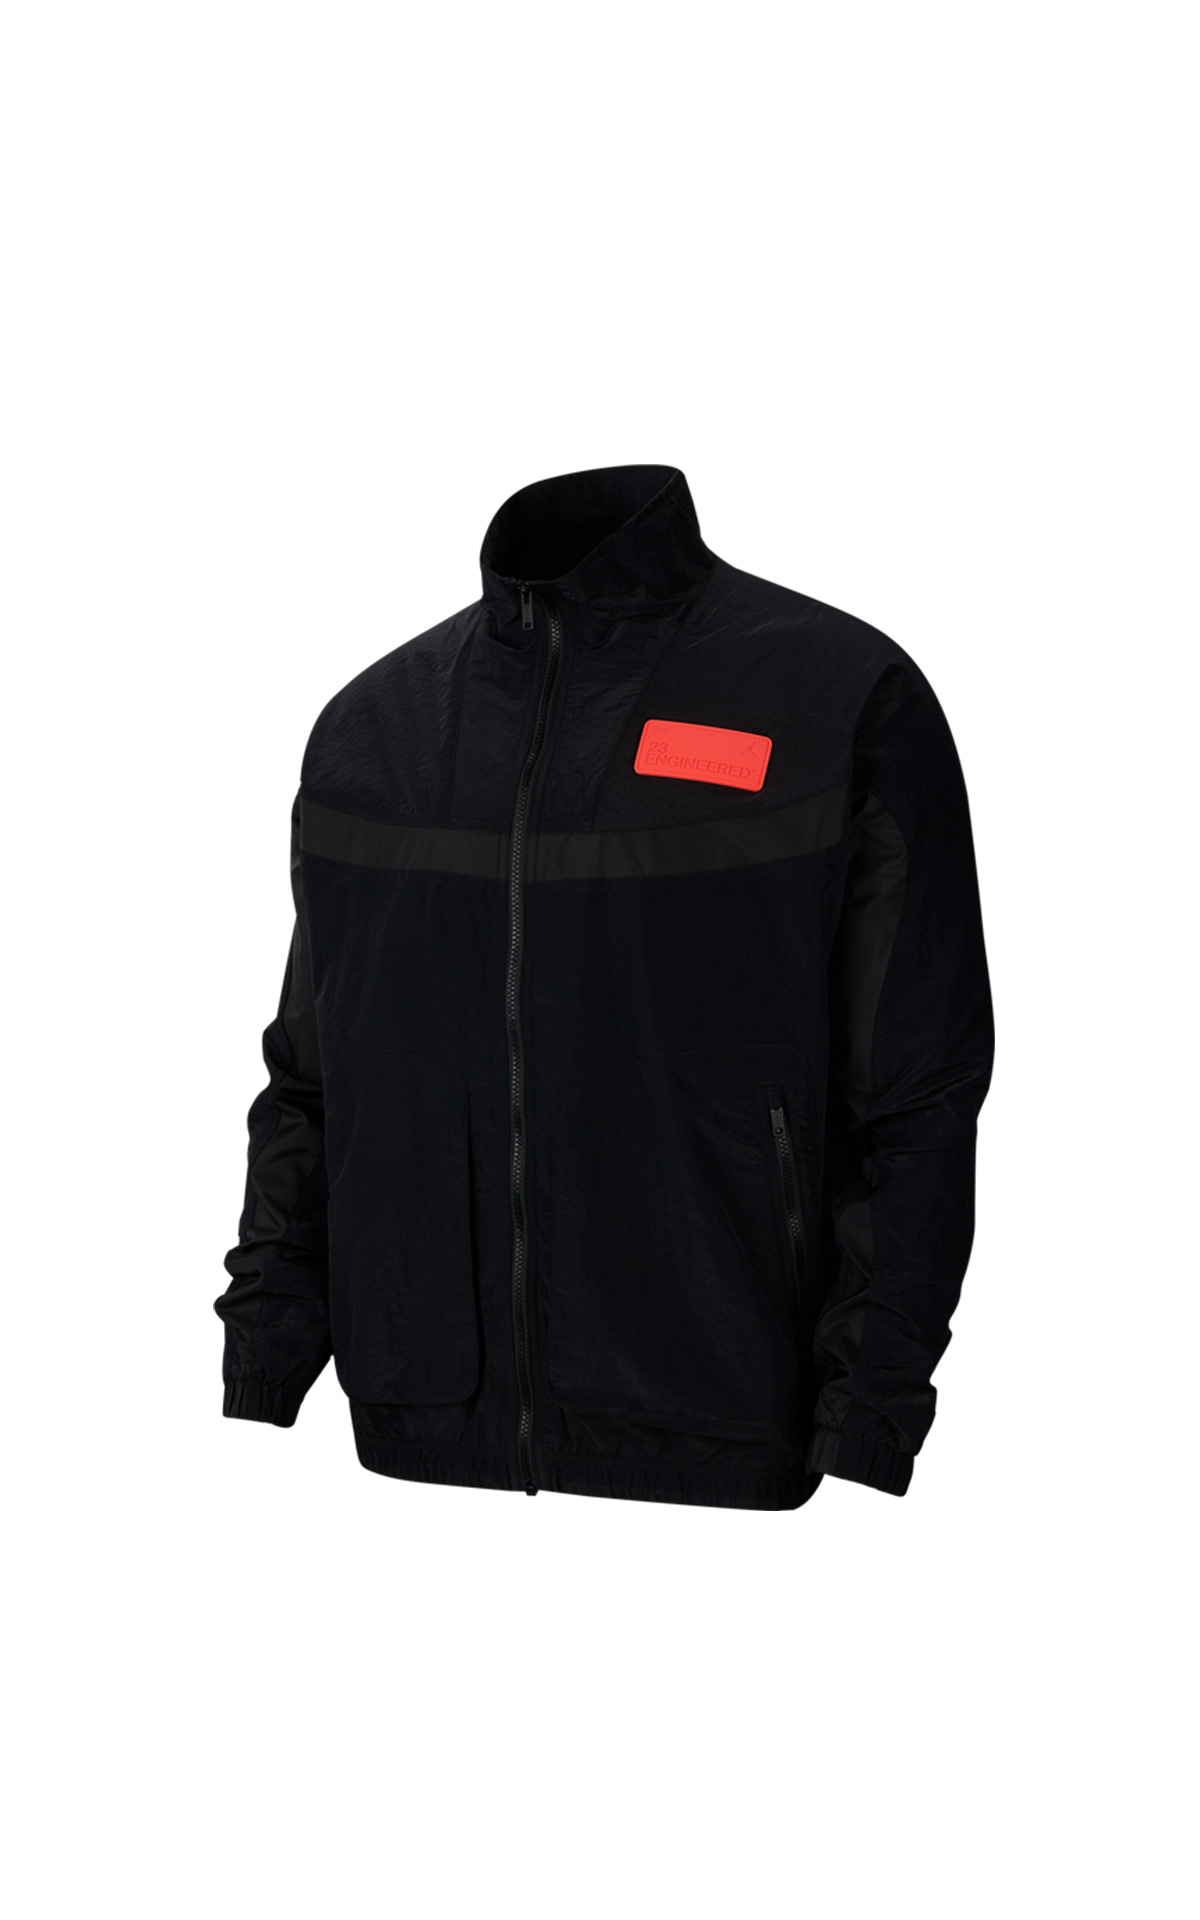 Nike MJ 23ENG Nylon Jacket at The Bicester Village Shopping Collection